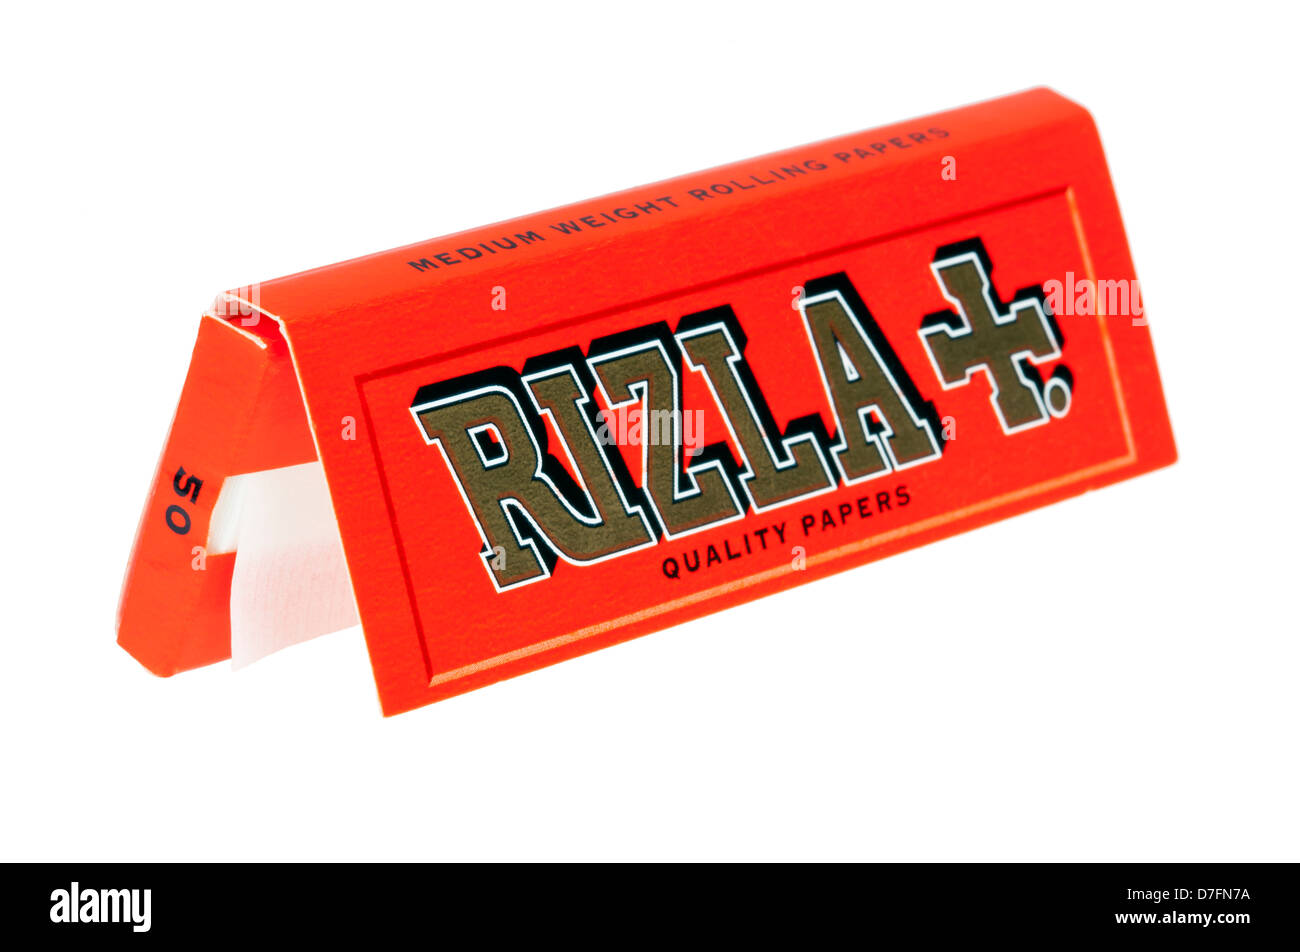 Tel-Aviv Israel - March 20th 2011: full pack Rizla rolling papers. This is orange pack short papers which contains - Stock Image